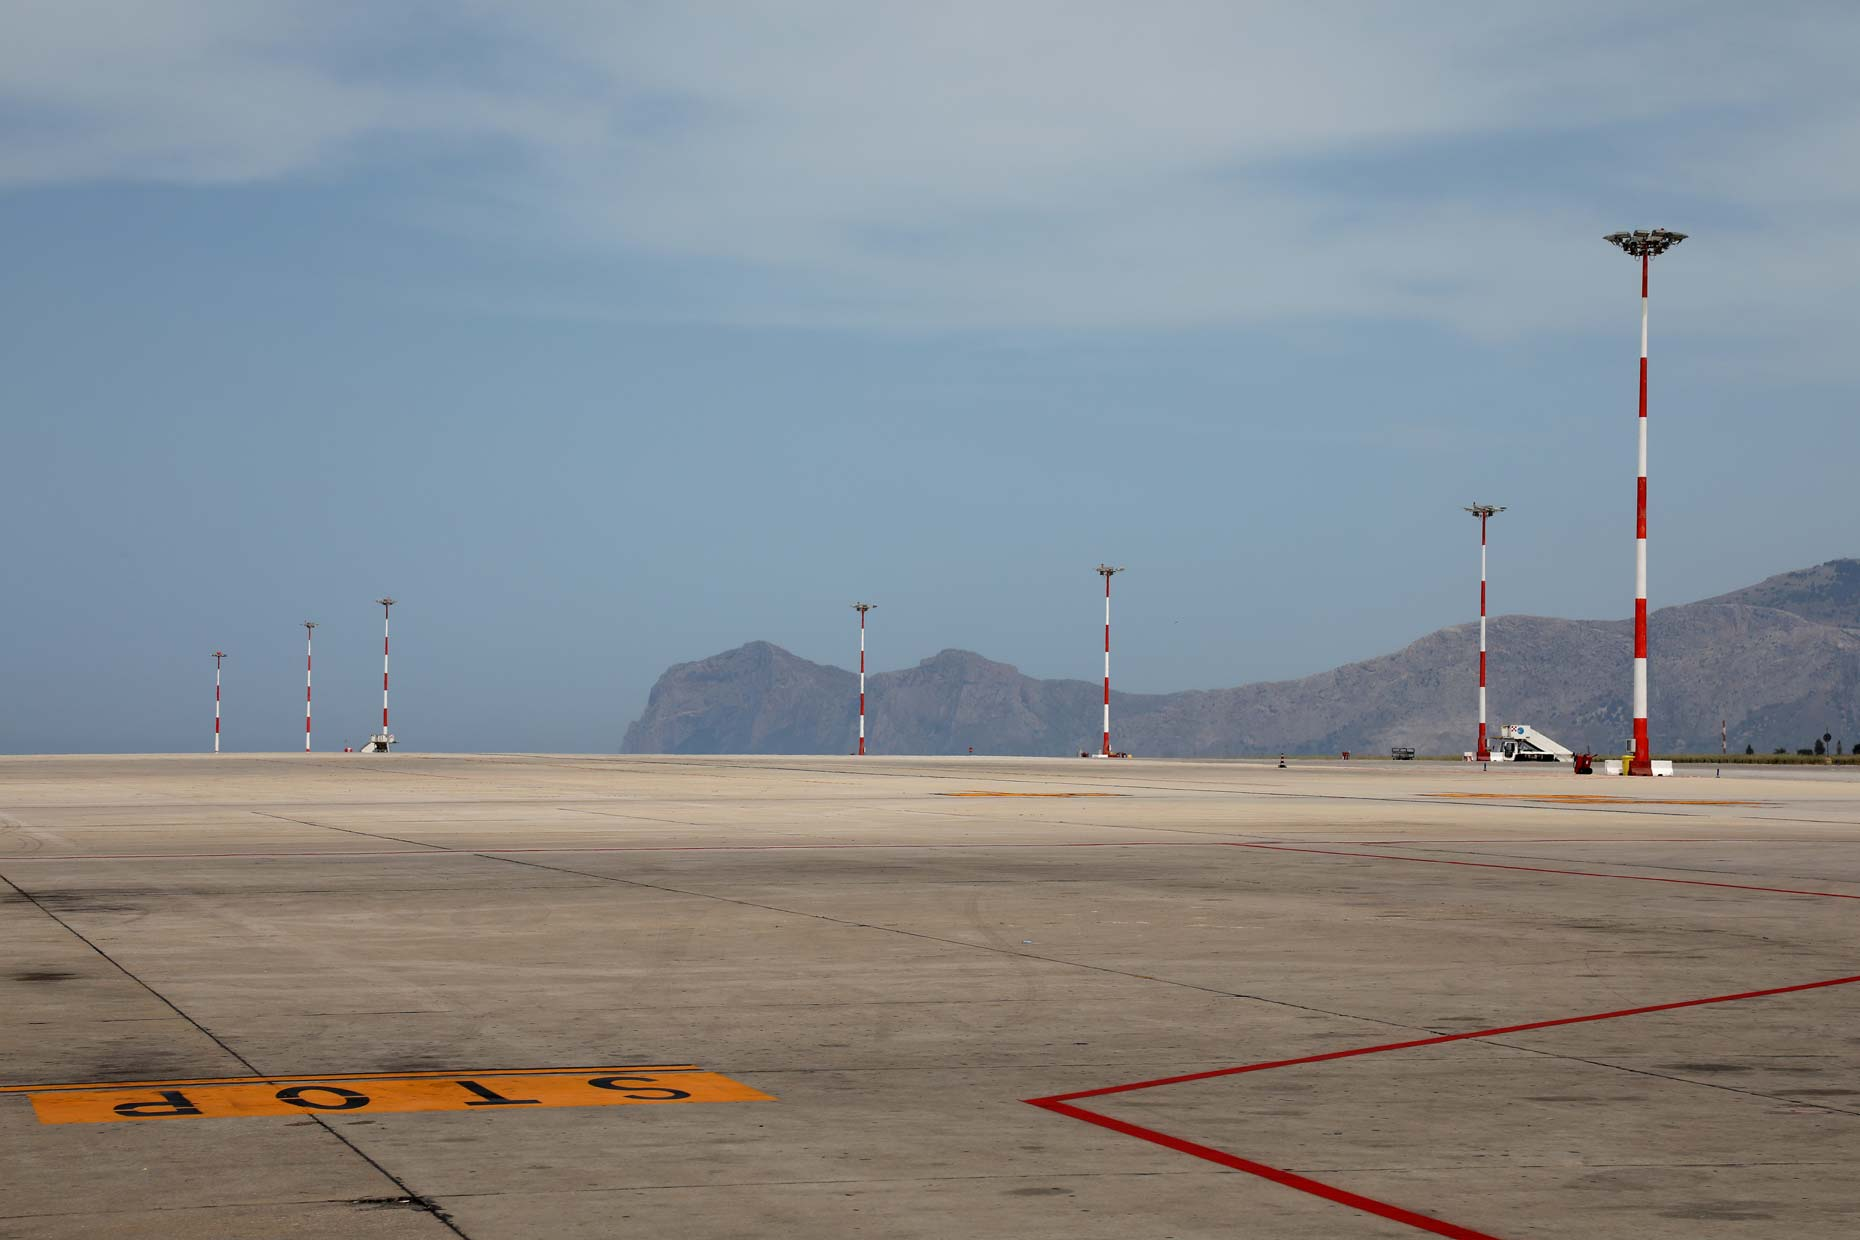 italy-palermo-airport-tarmac-jeffery-smart